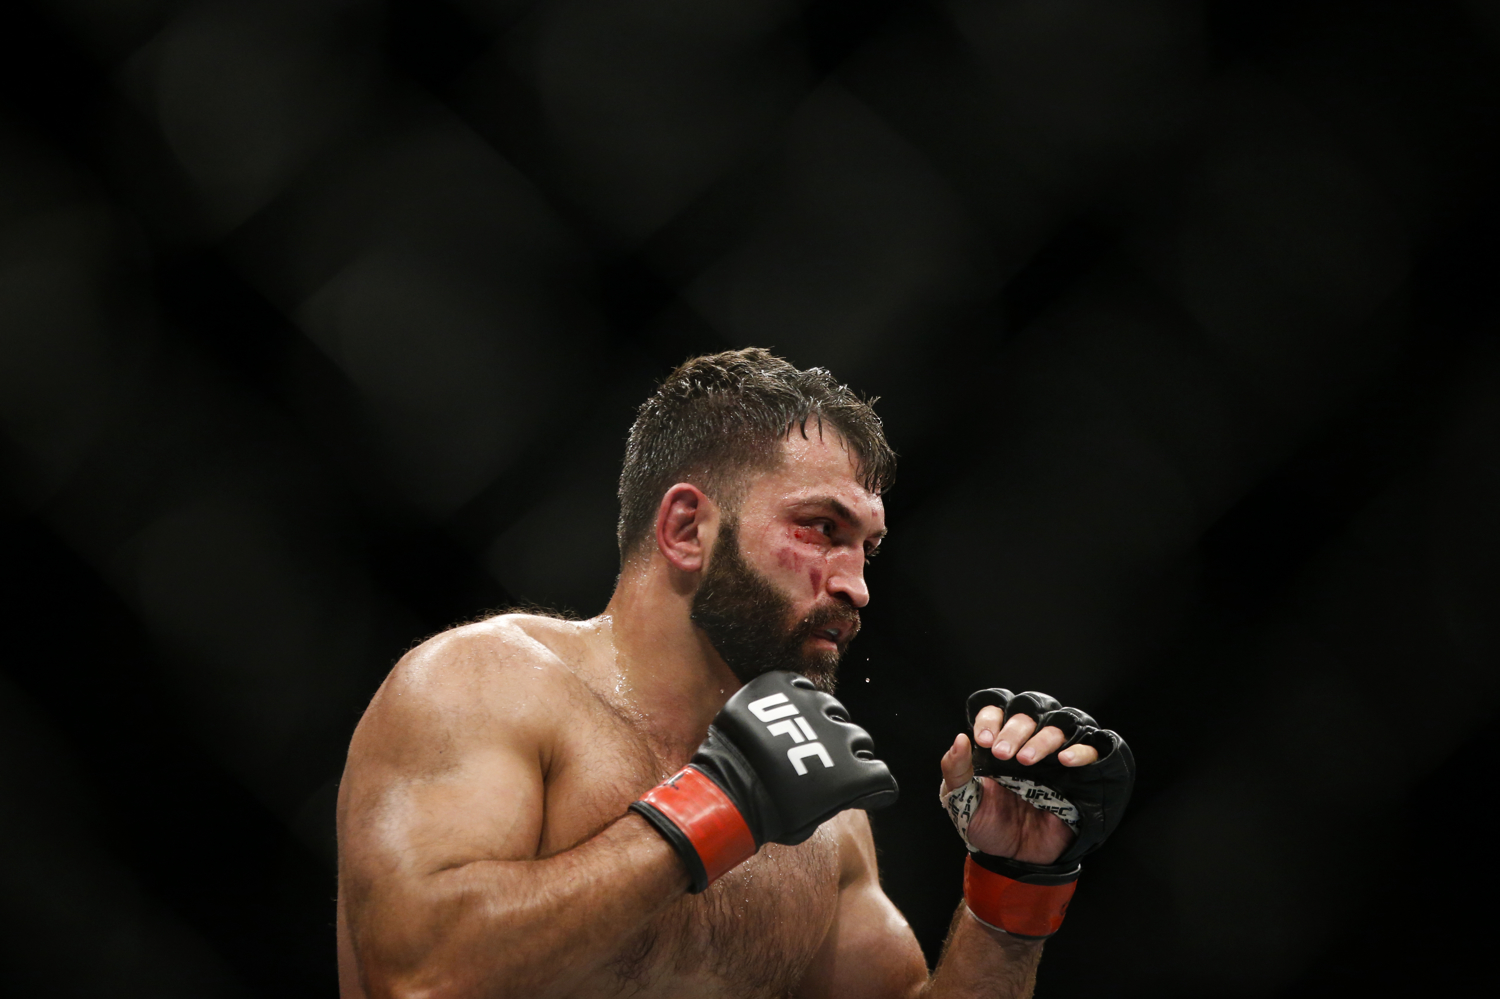 Andrei Arlovski of Belarus in action during his heavyweight bout against Marcin Tybura of Poland at the UFC Fight Night at the Singapore Indoor Stadium on June 17, 2017.